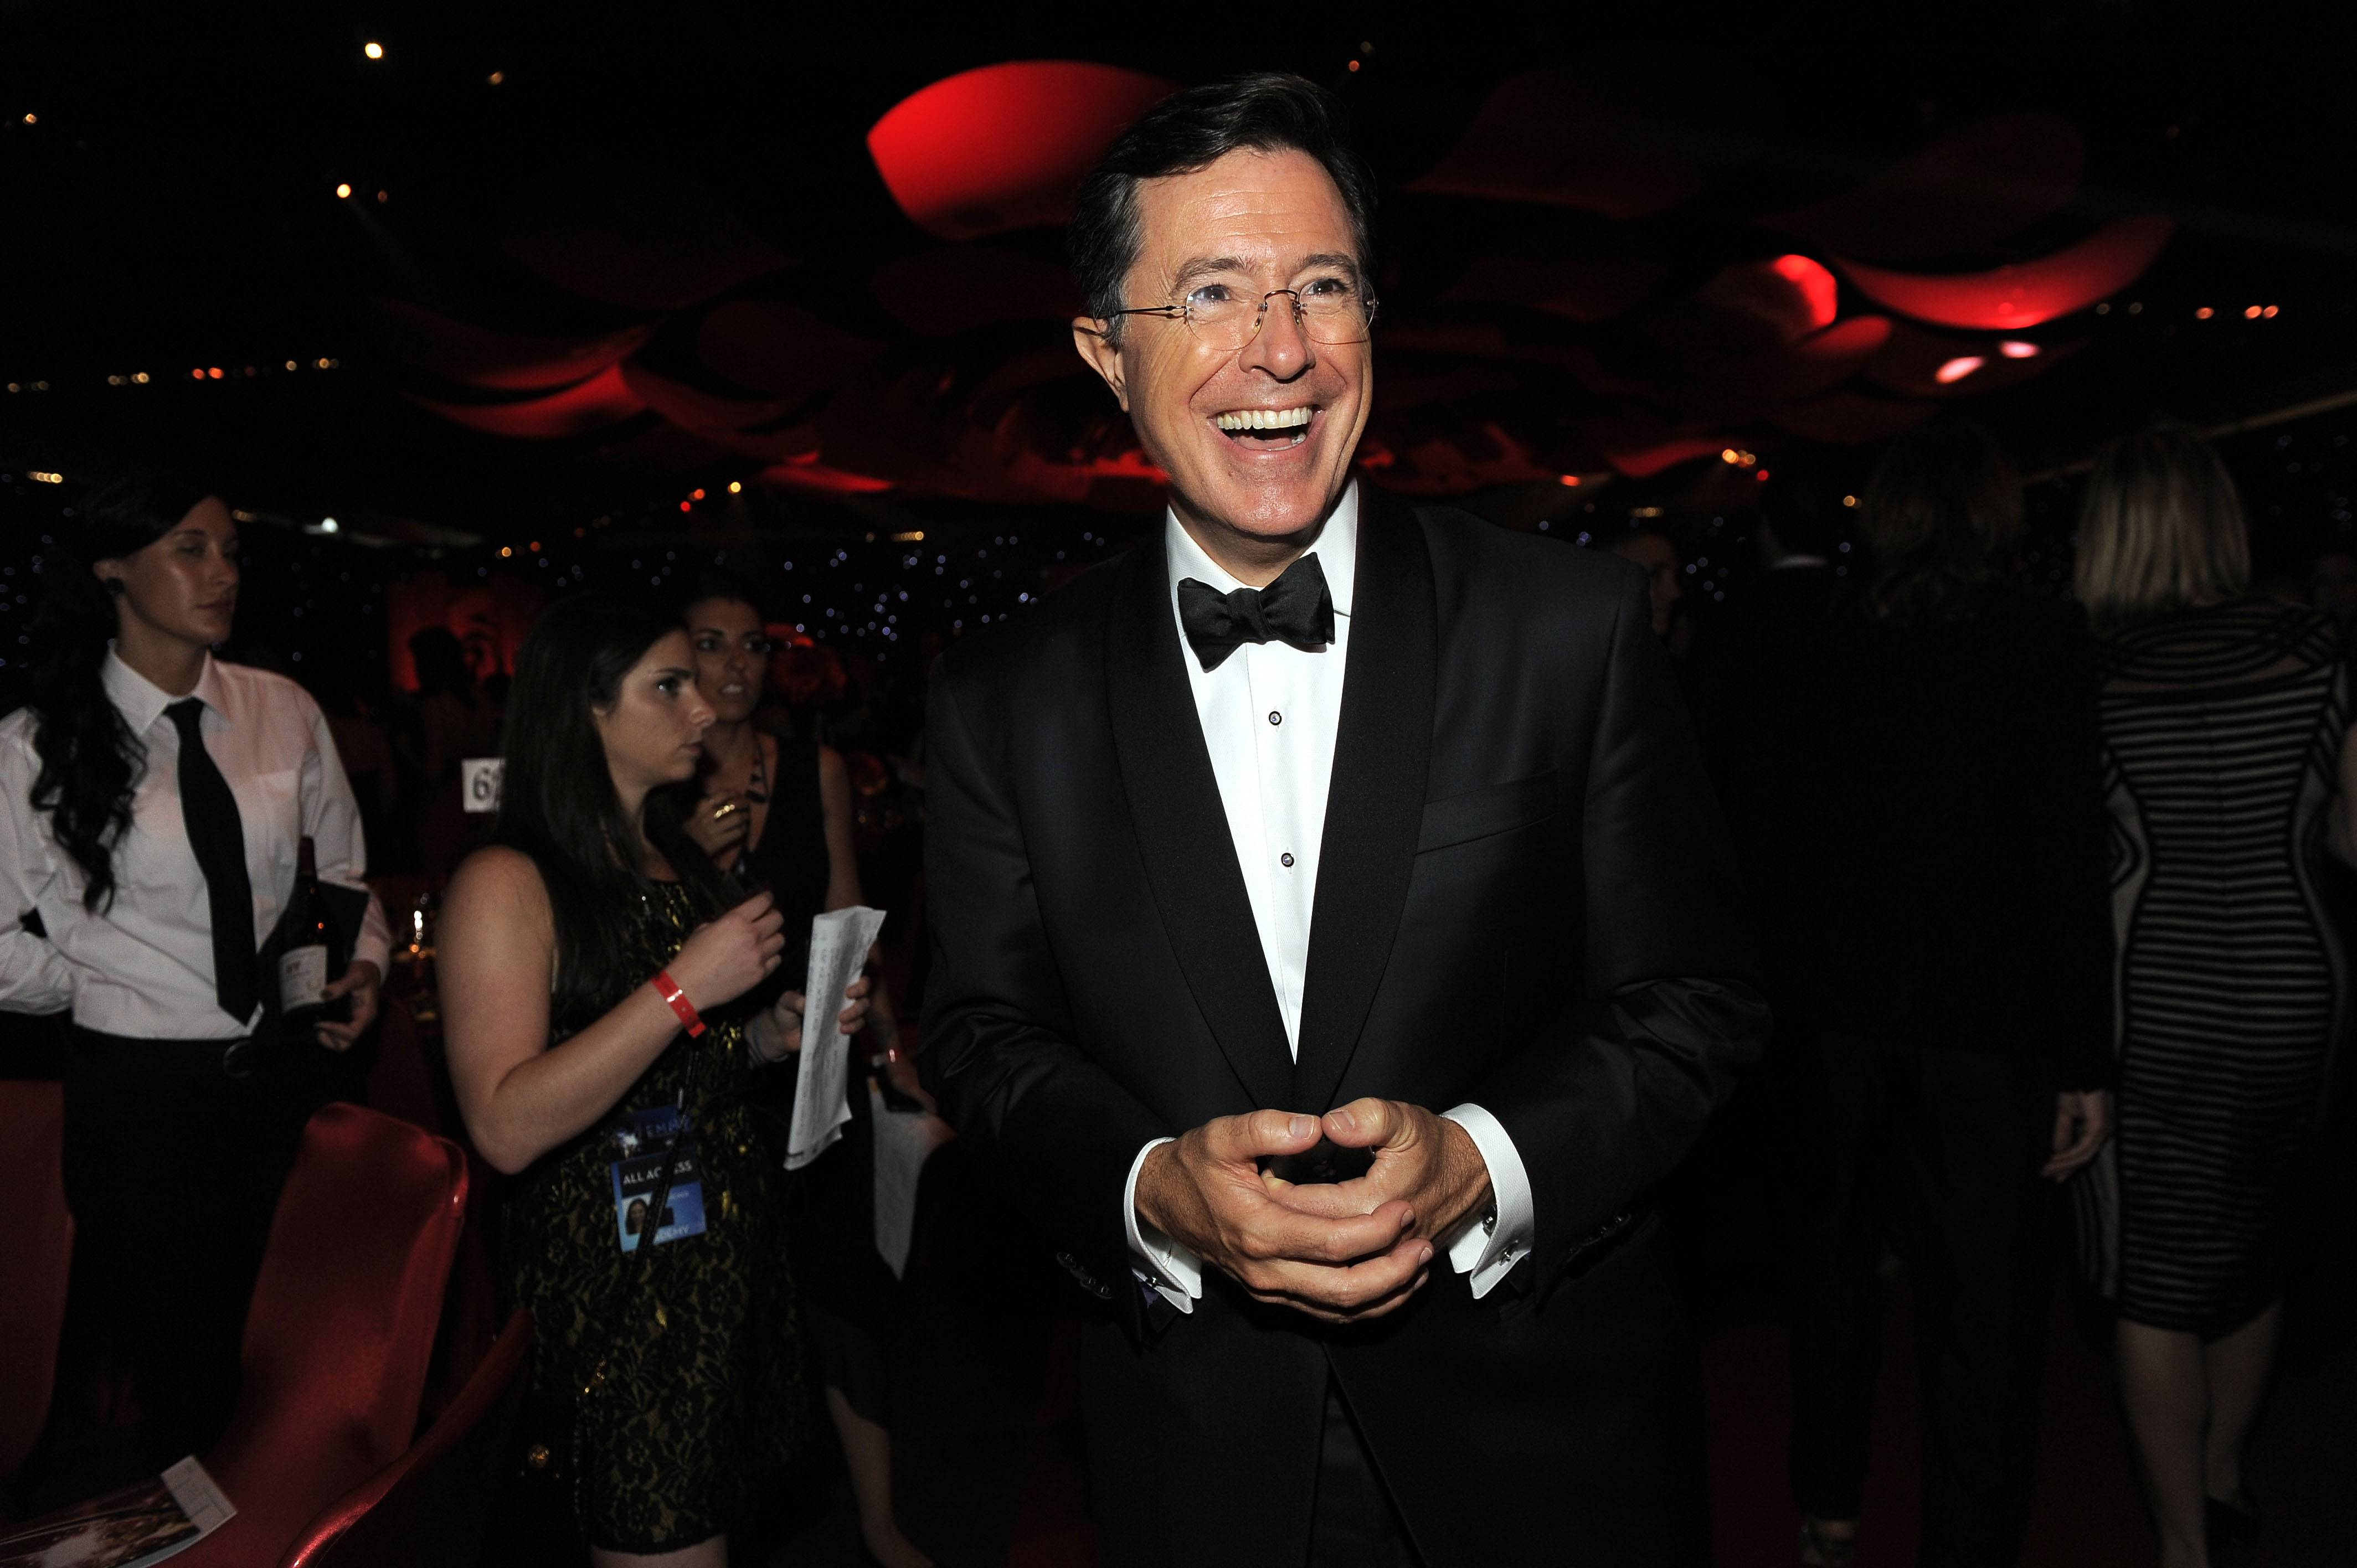 Colbert to replace Letterman on 'Late Show'